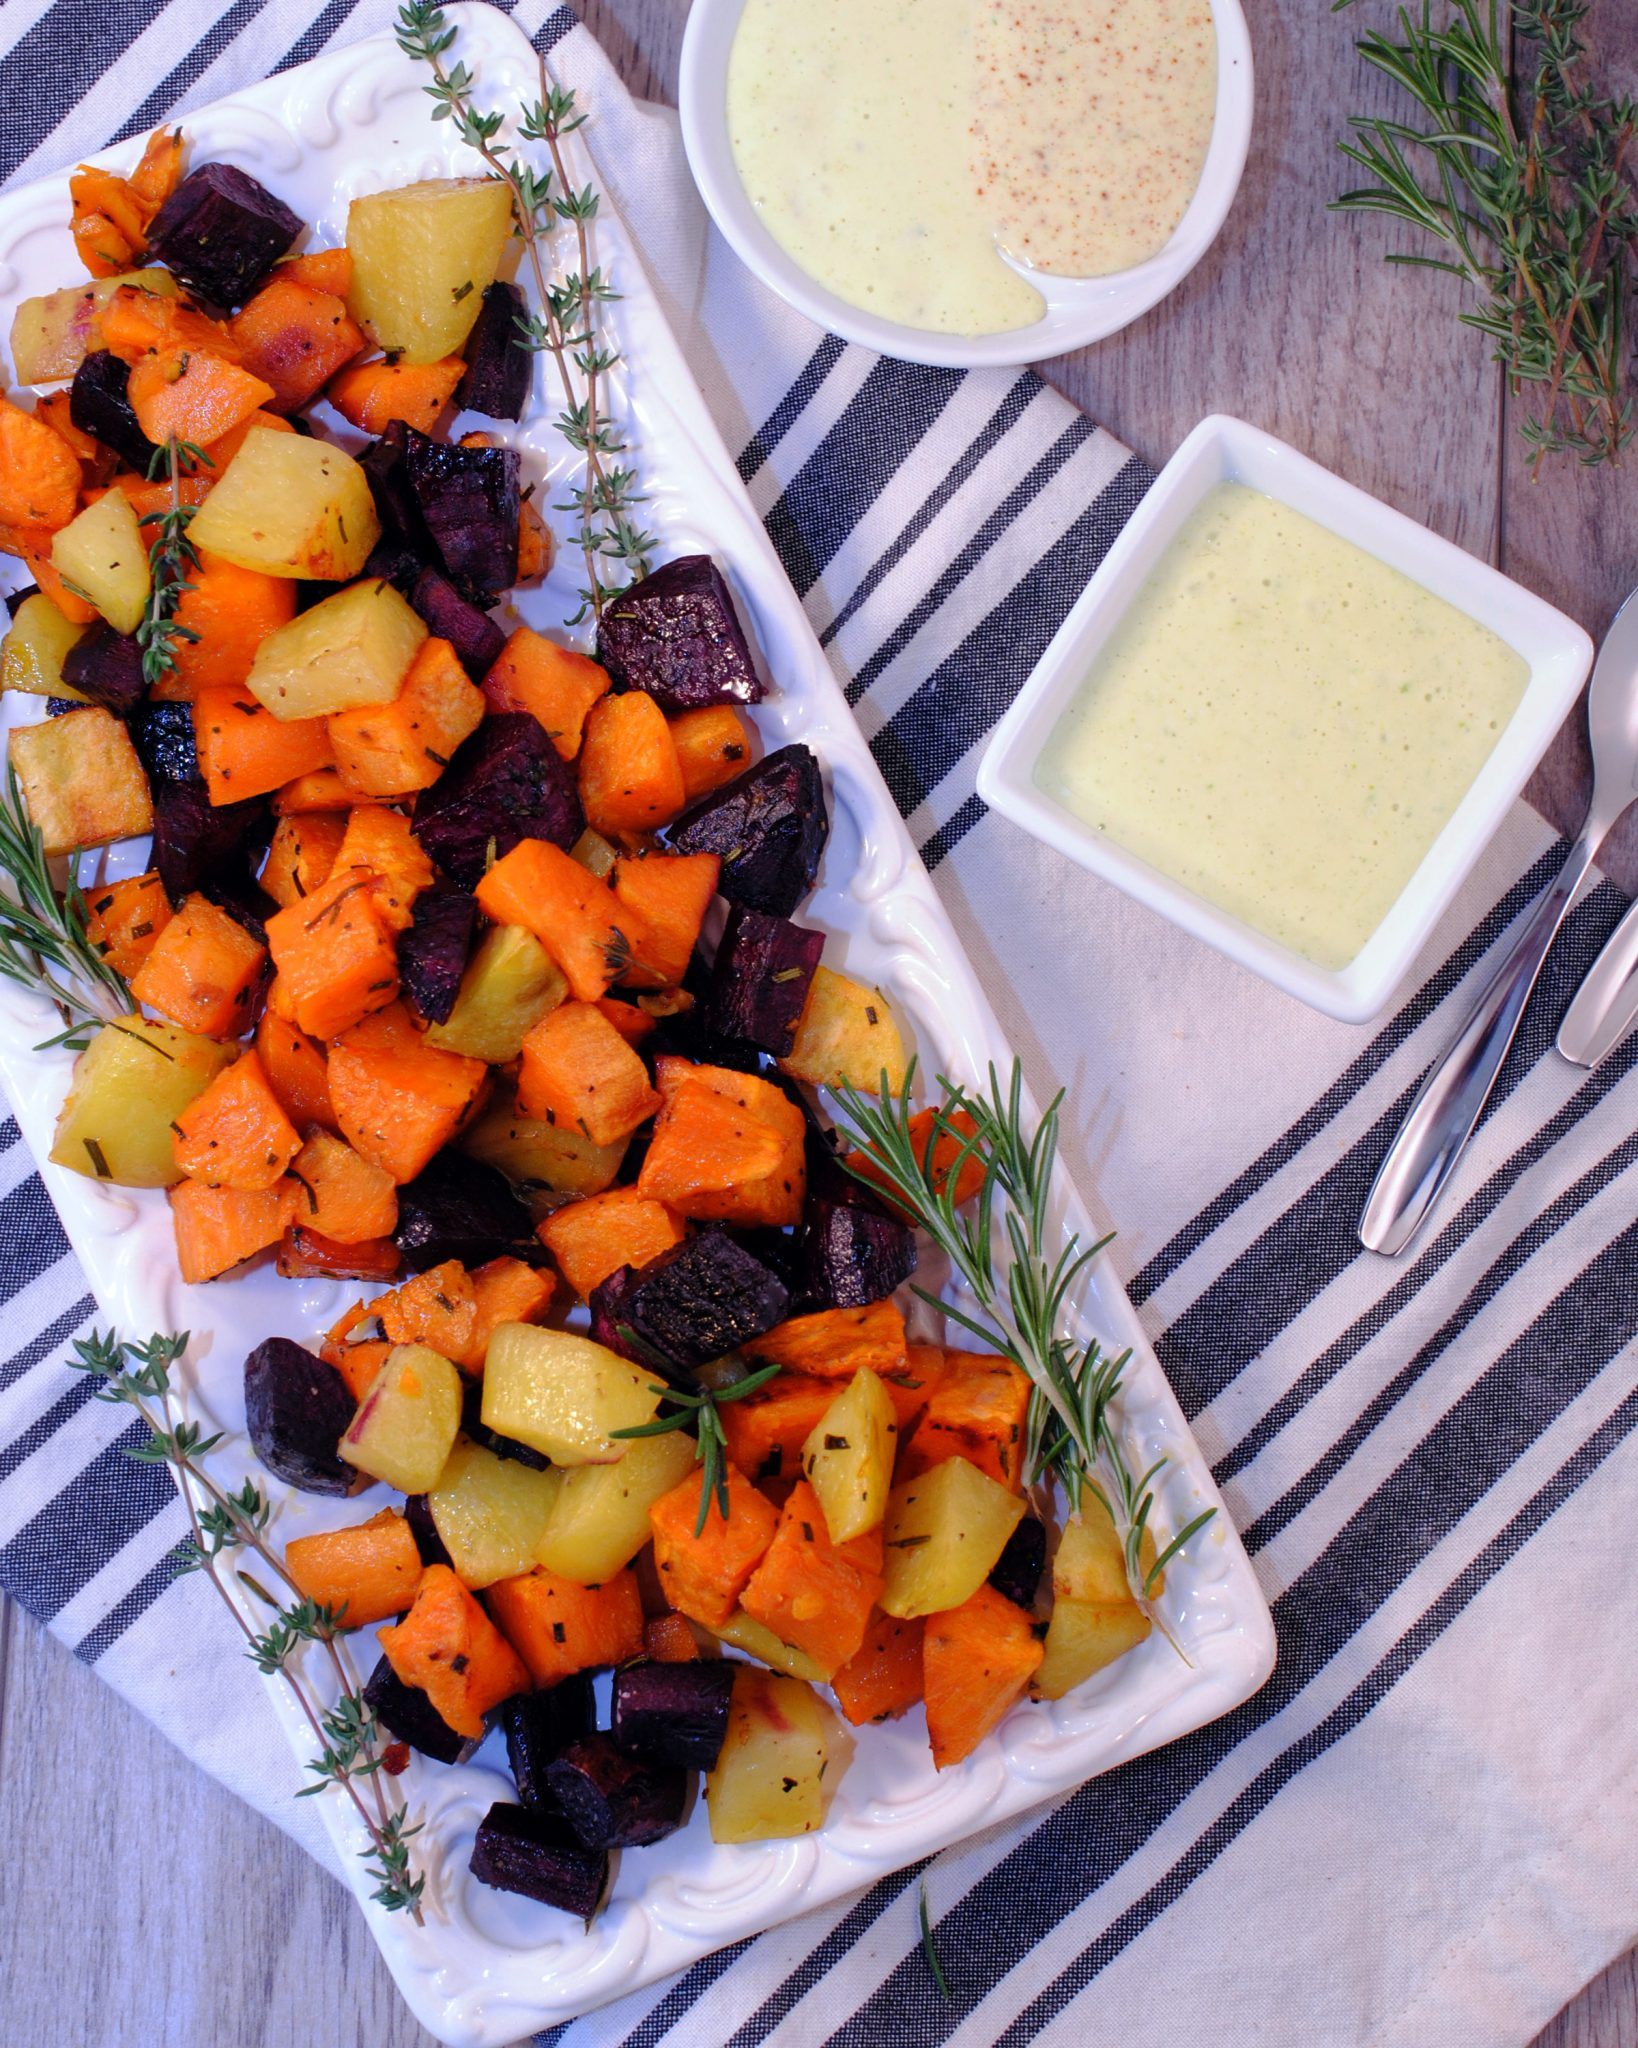 A savory roasted sweet potato flavored with fresh herbs of chives, rosemary, and thyme served with a rosemary garlic aioli sauce